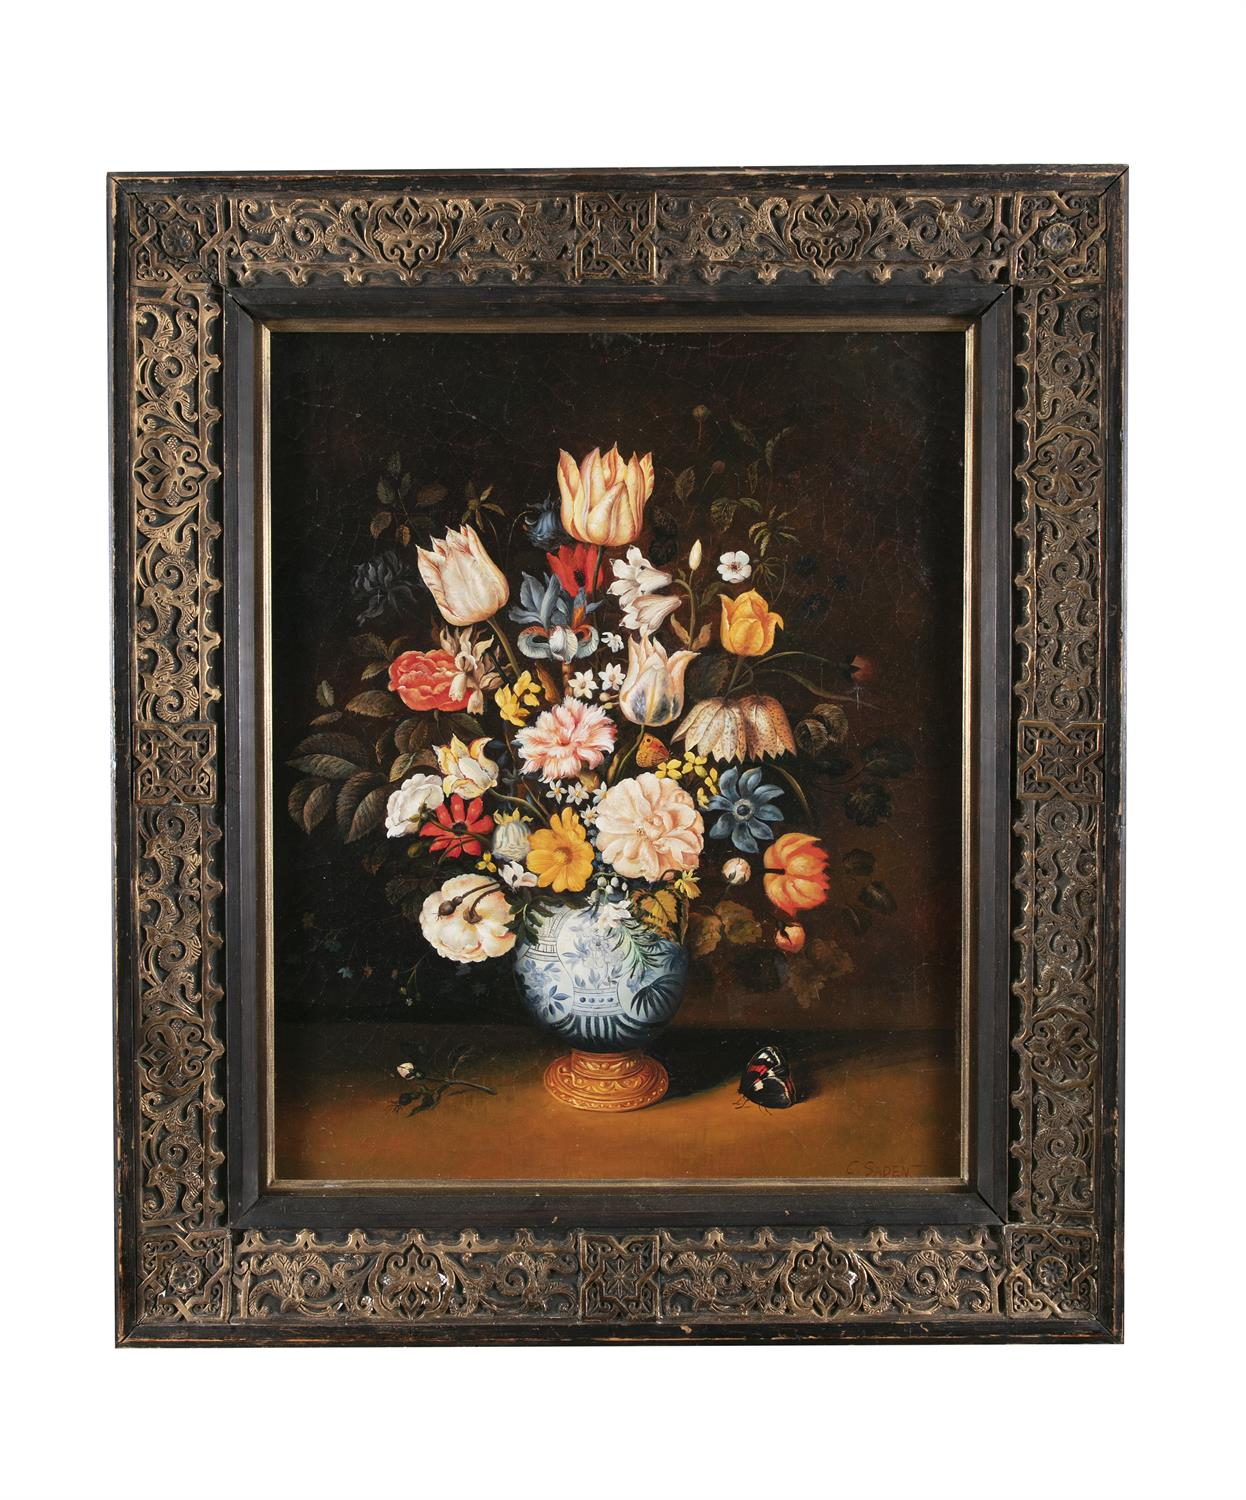 AFTER AMBROSIUS BOSSCHAERT THE YOUNGER (19TH CENTURY ) Still life with flowers in a Wan-Li Kraak